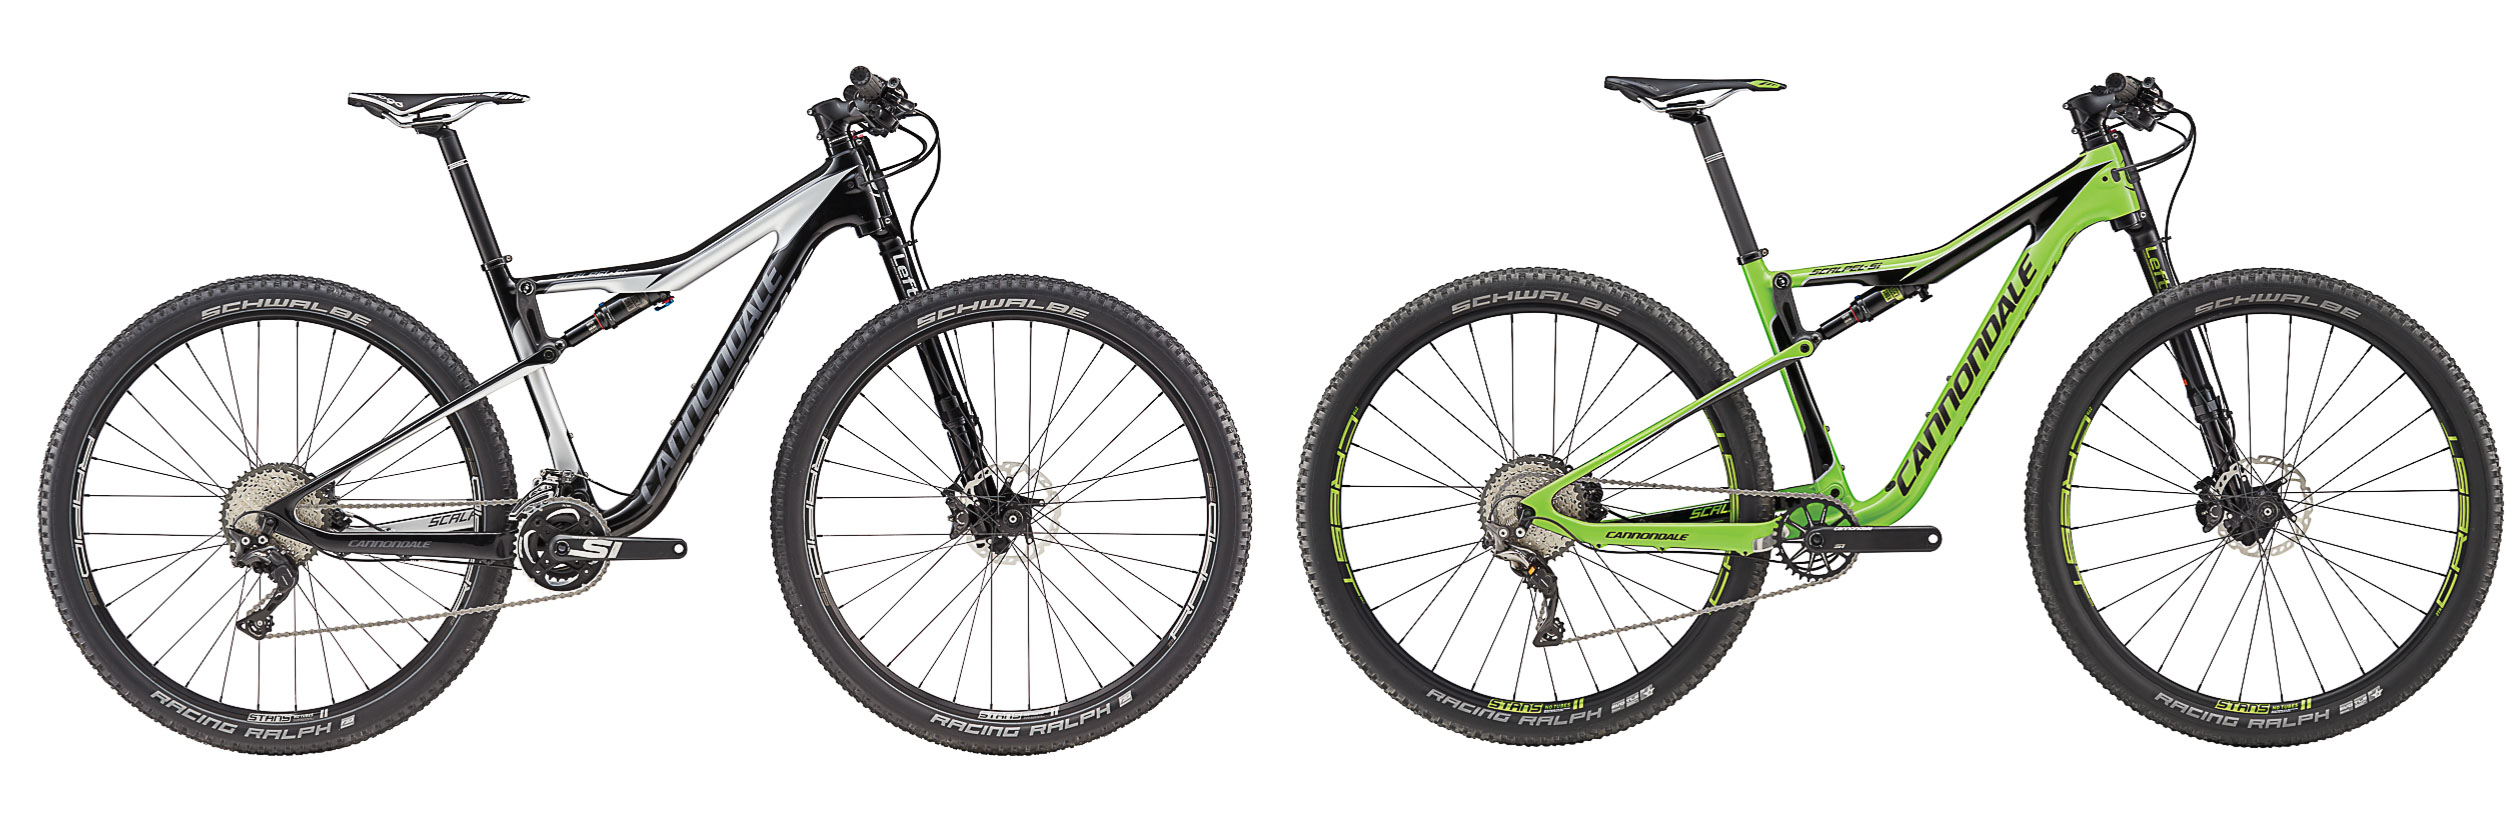 1-Cannondale_Scalpel_2017_Copyright_OBeart_VojoMag-1